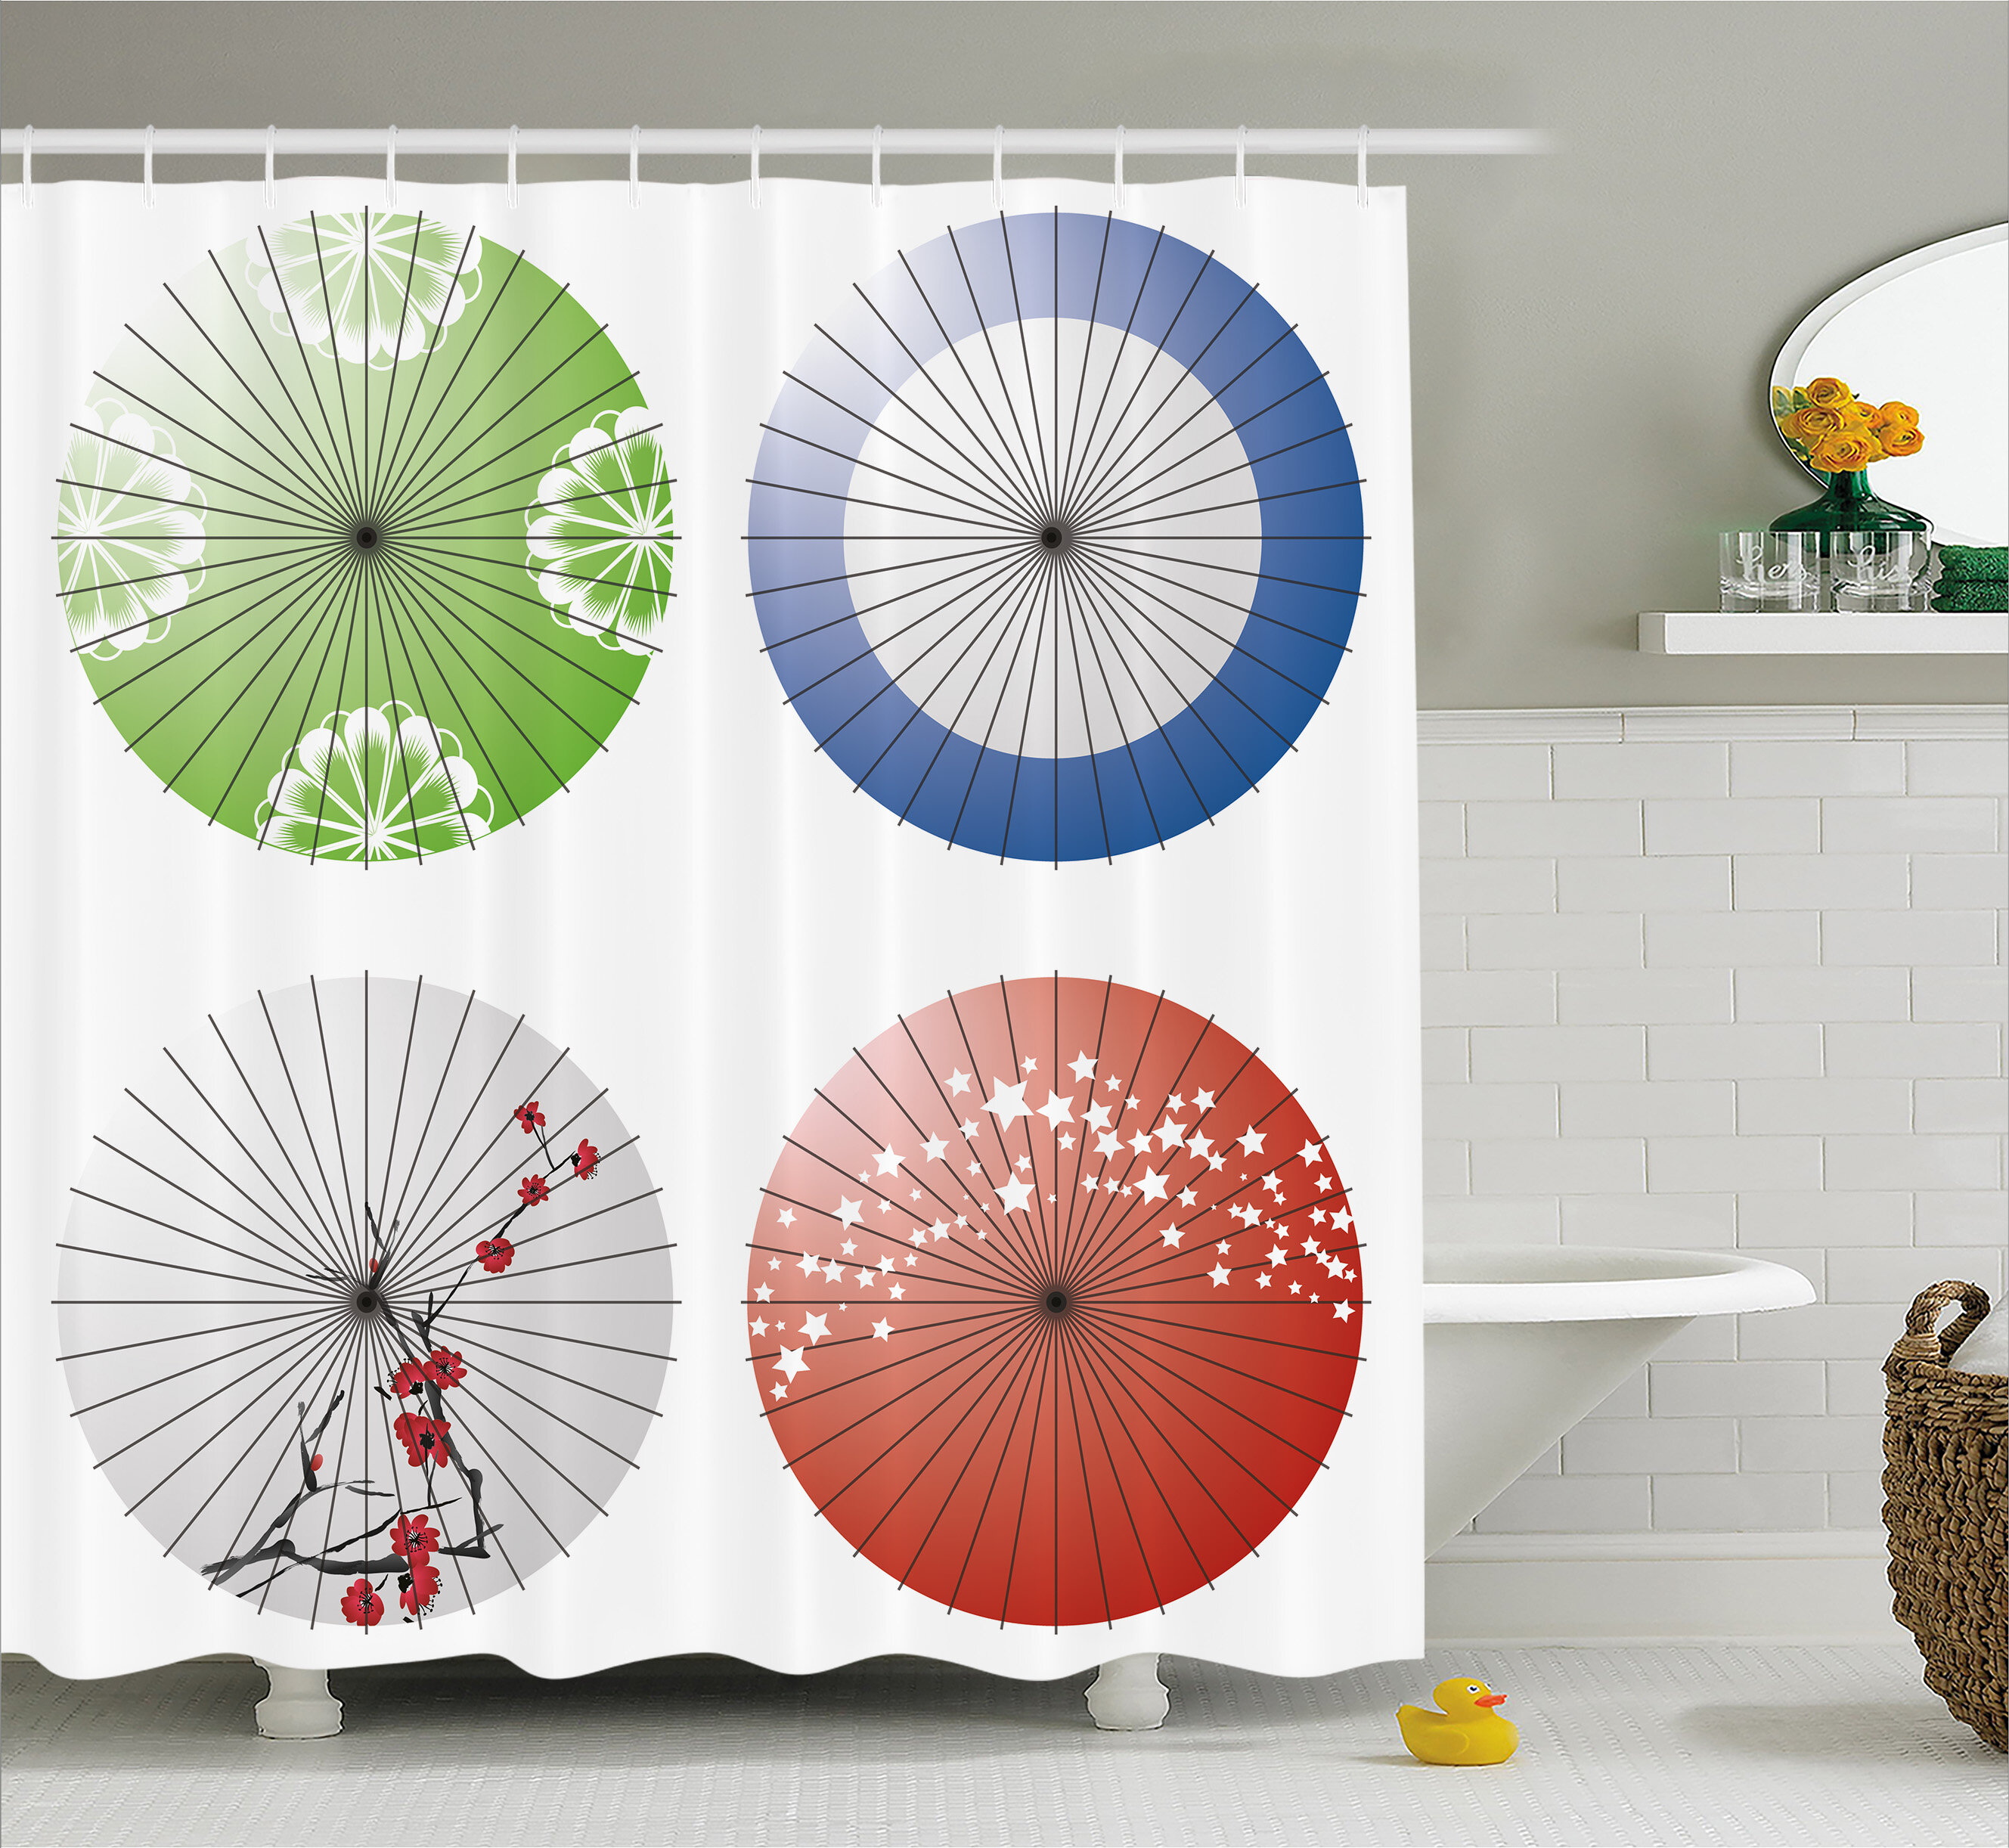 East Urban Home Japanese Umbrella Decor Shower Curtain